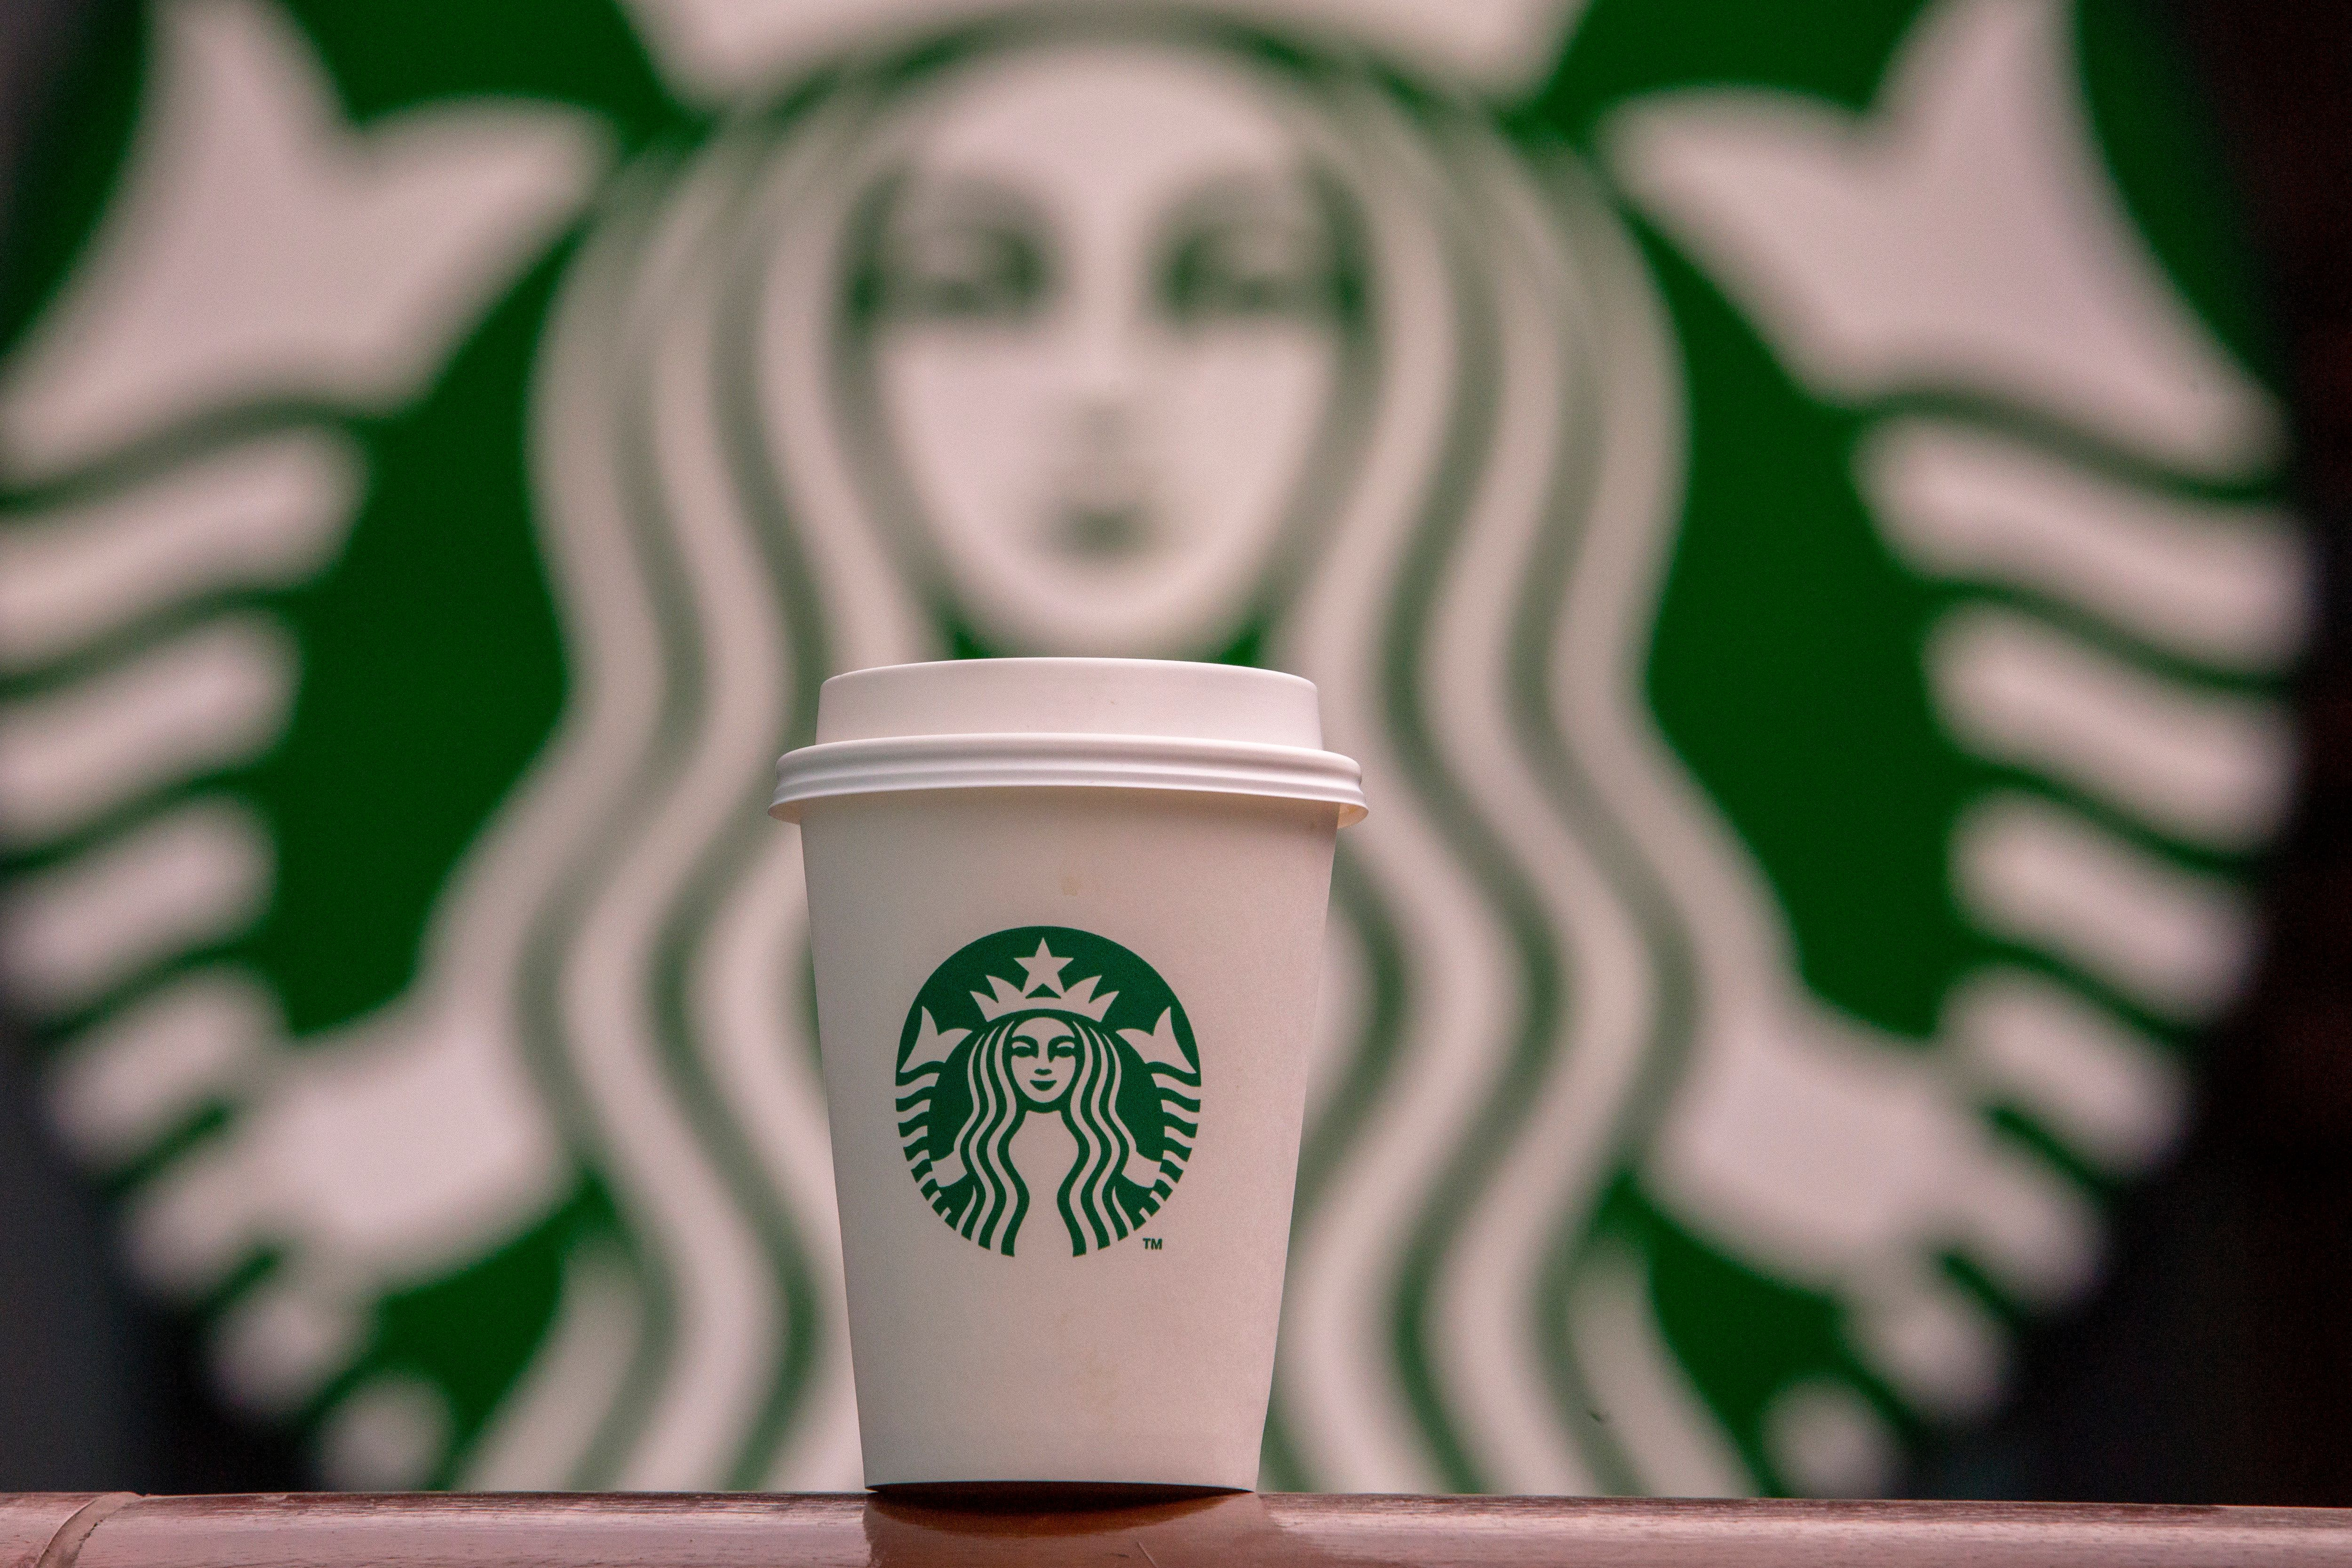 Starbucks had previously offered a 25 pence per cup discount if people brought their own mugs to